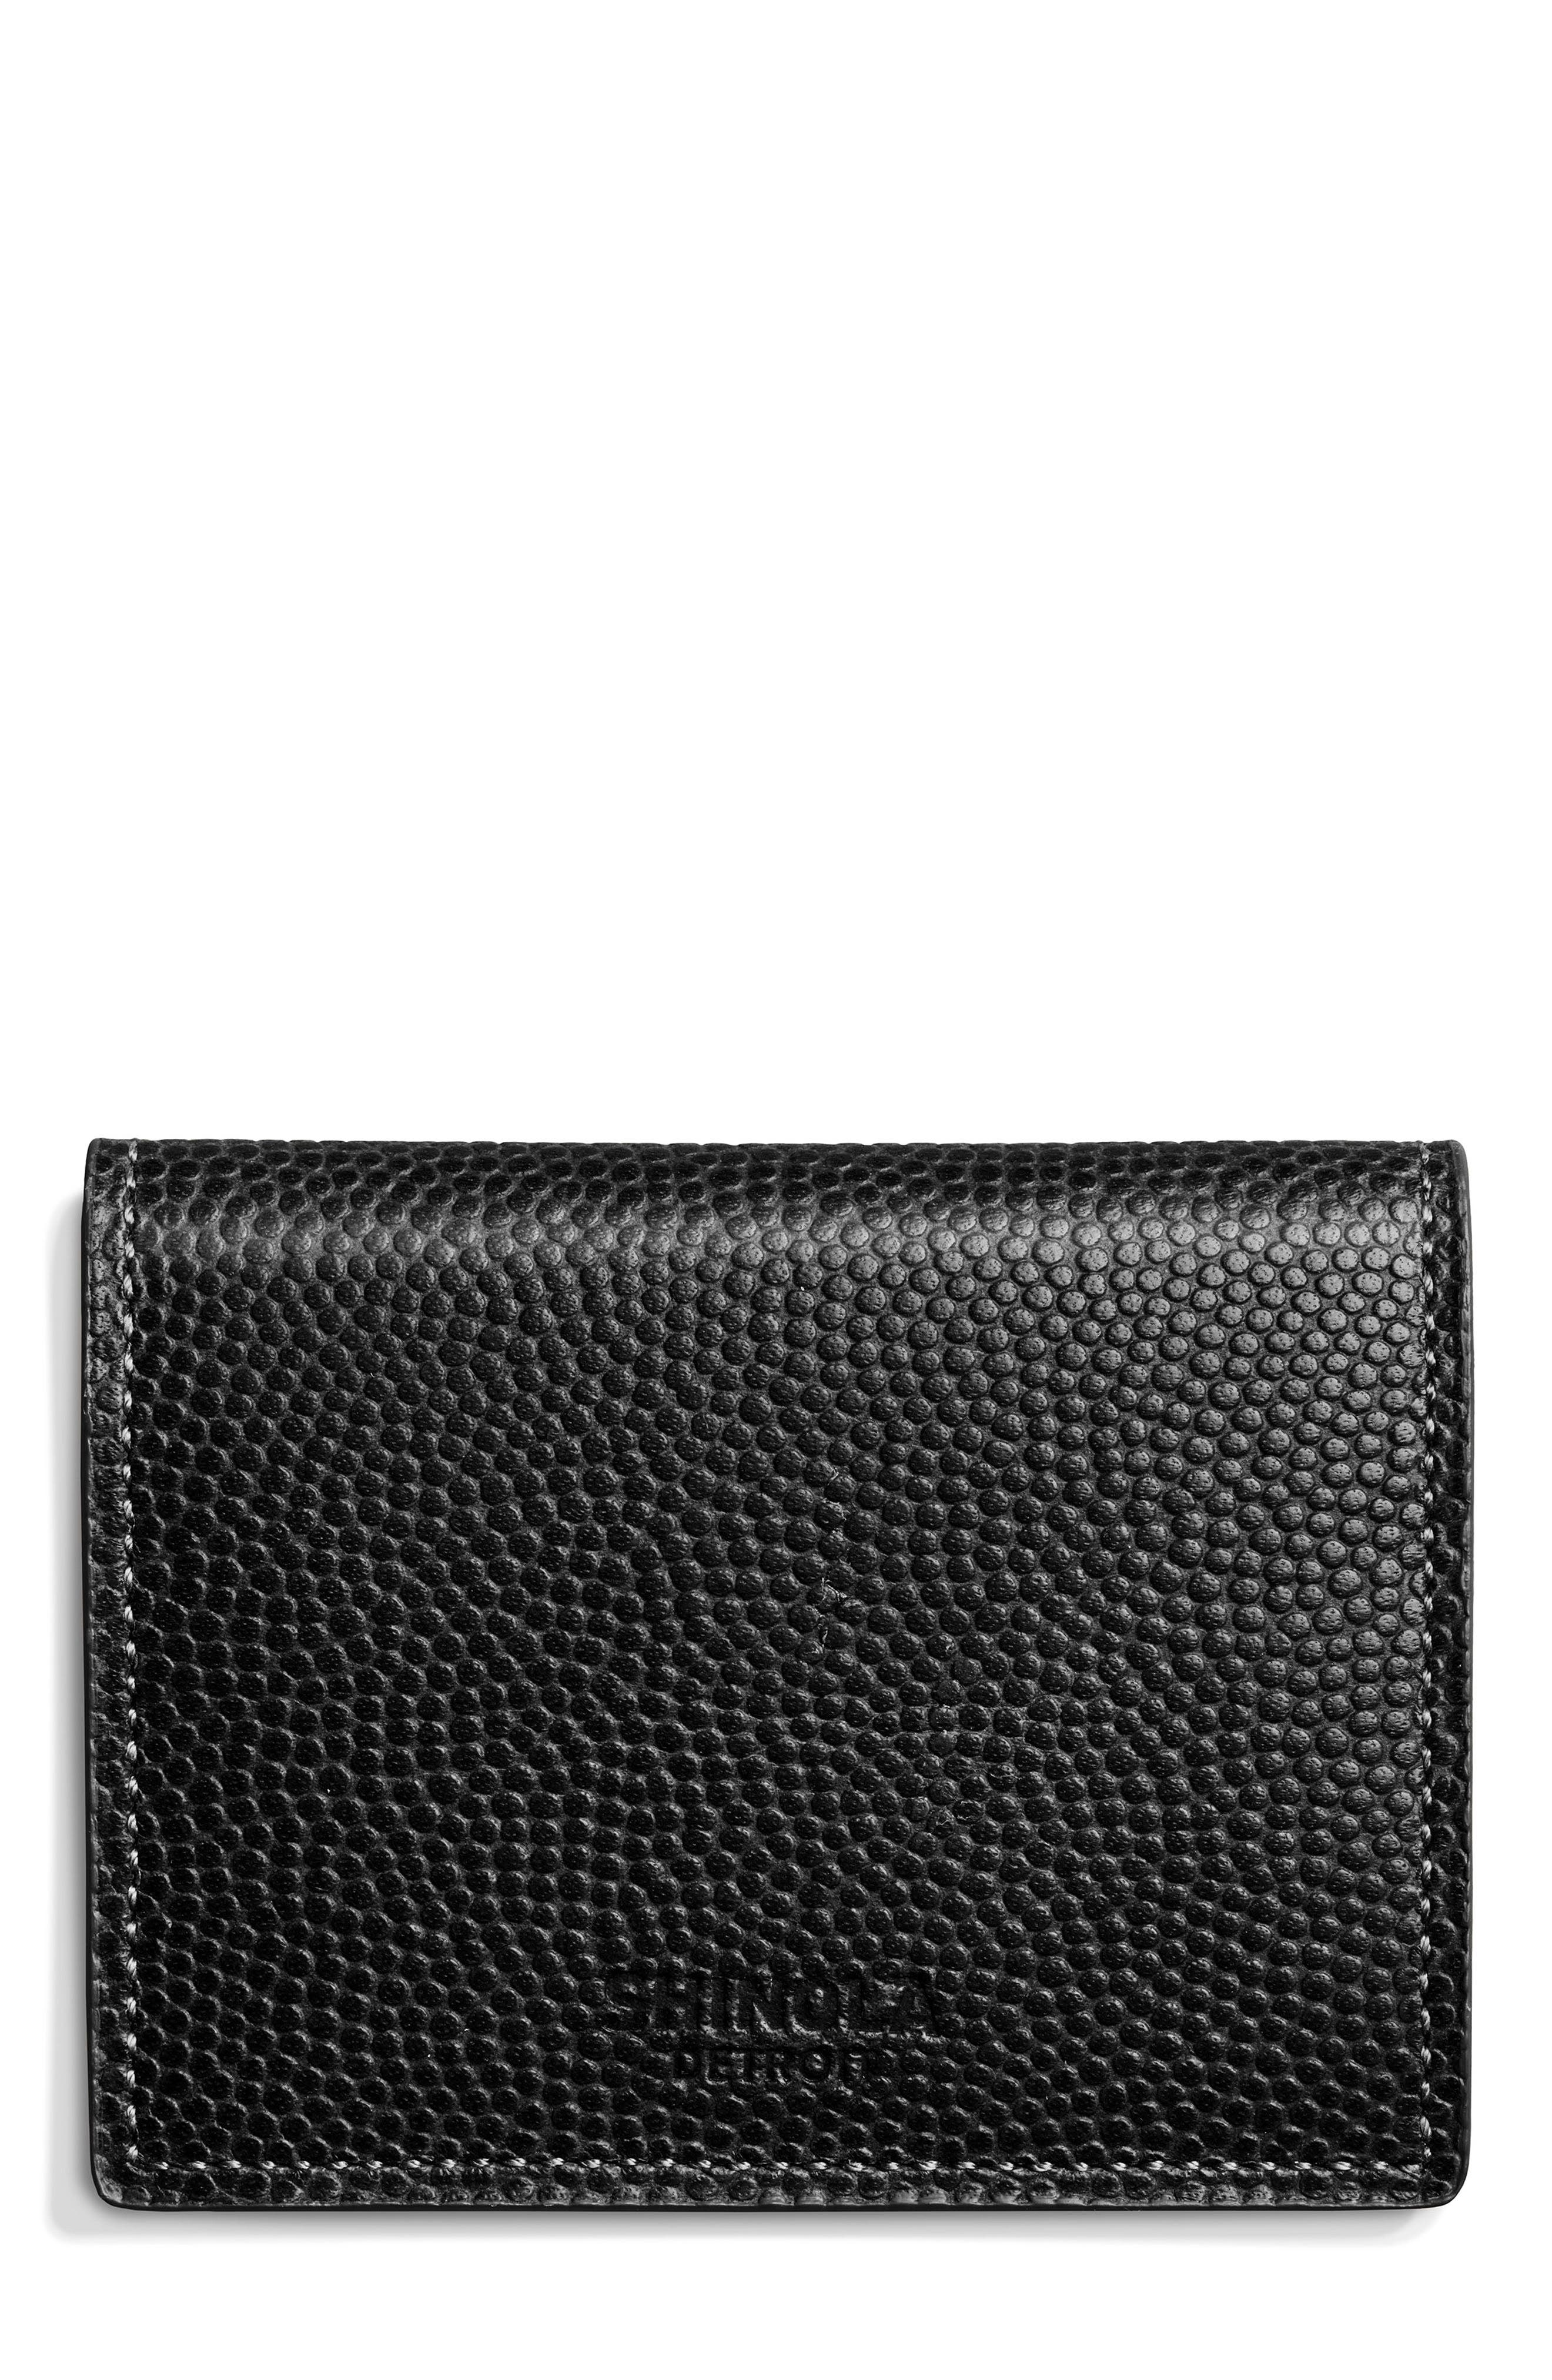 Leather Wallet,                         Main,                         color, 001